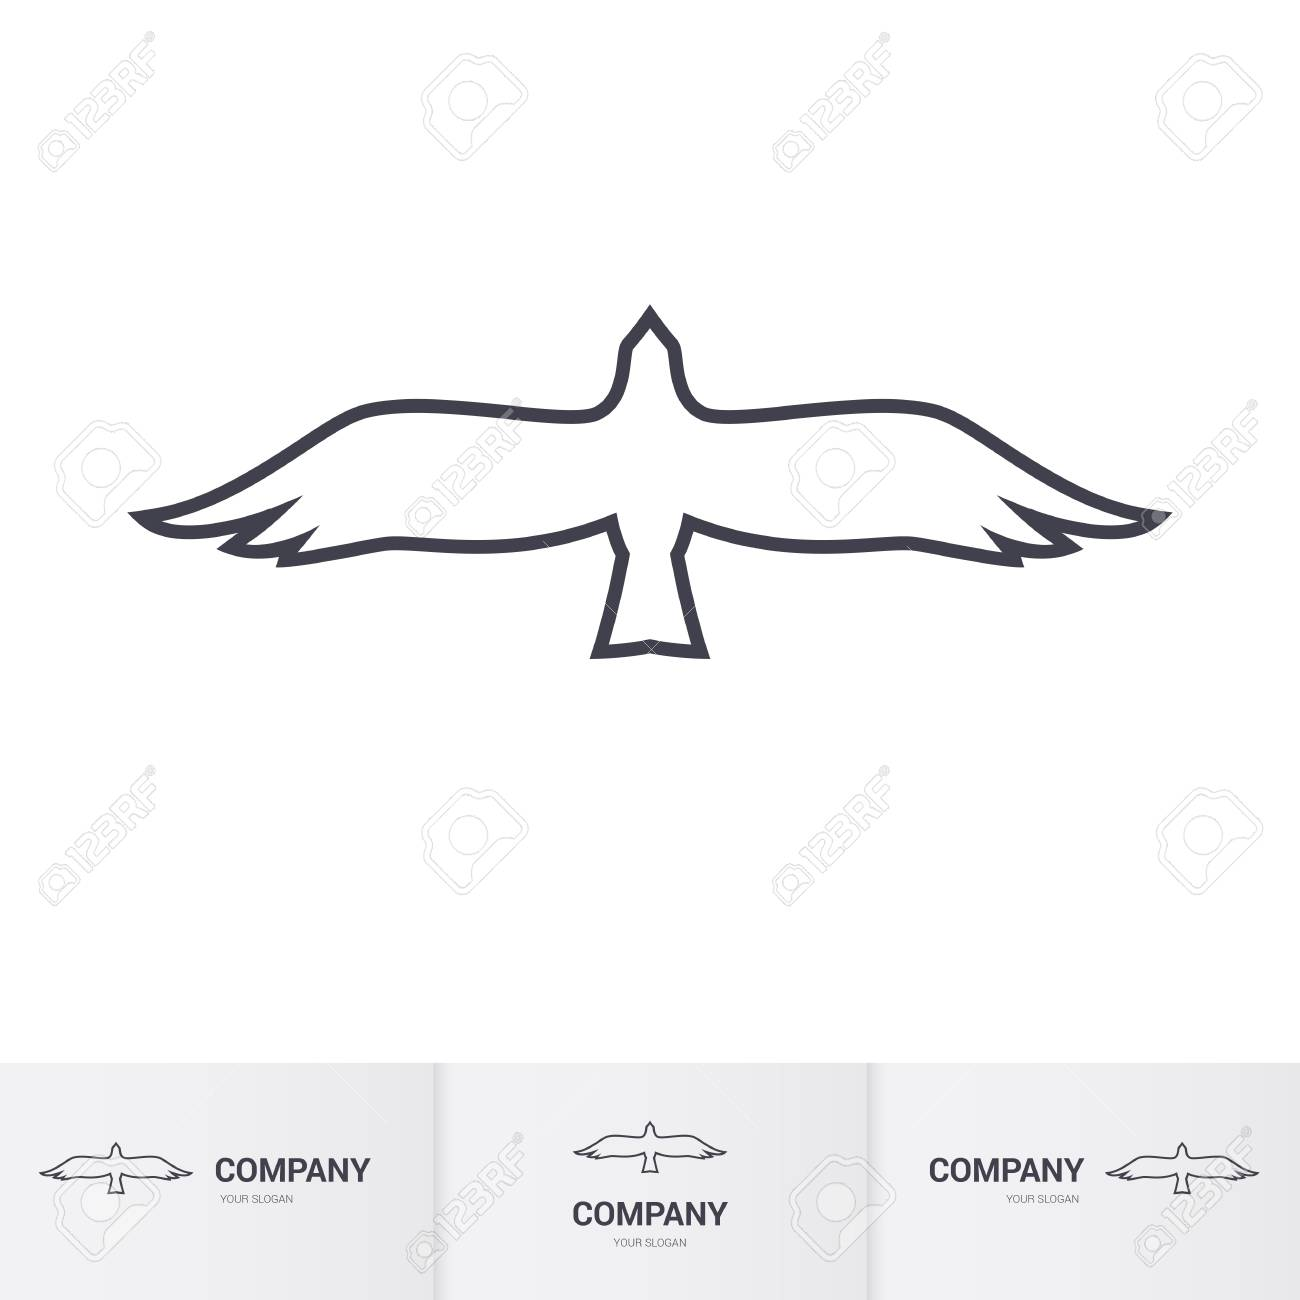 Simple White Bird Of Prey For Logo Template On White Background Royalty Free Cliparts Vectors And Stock Illustration Image 80787966